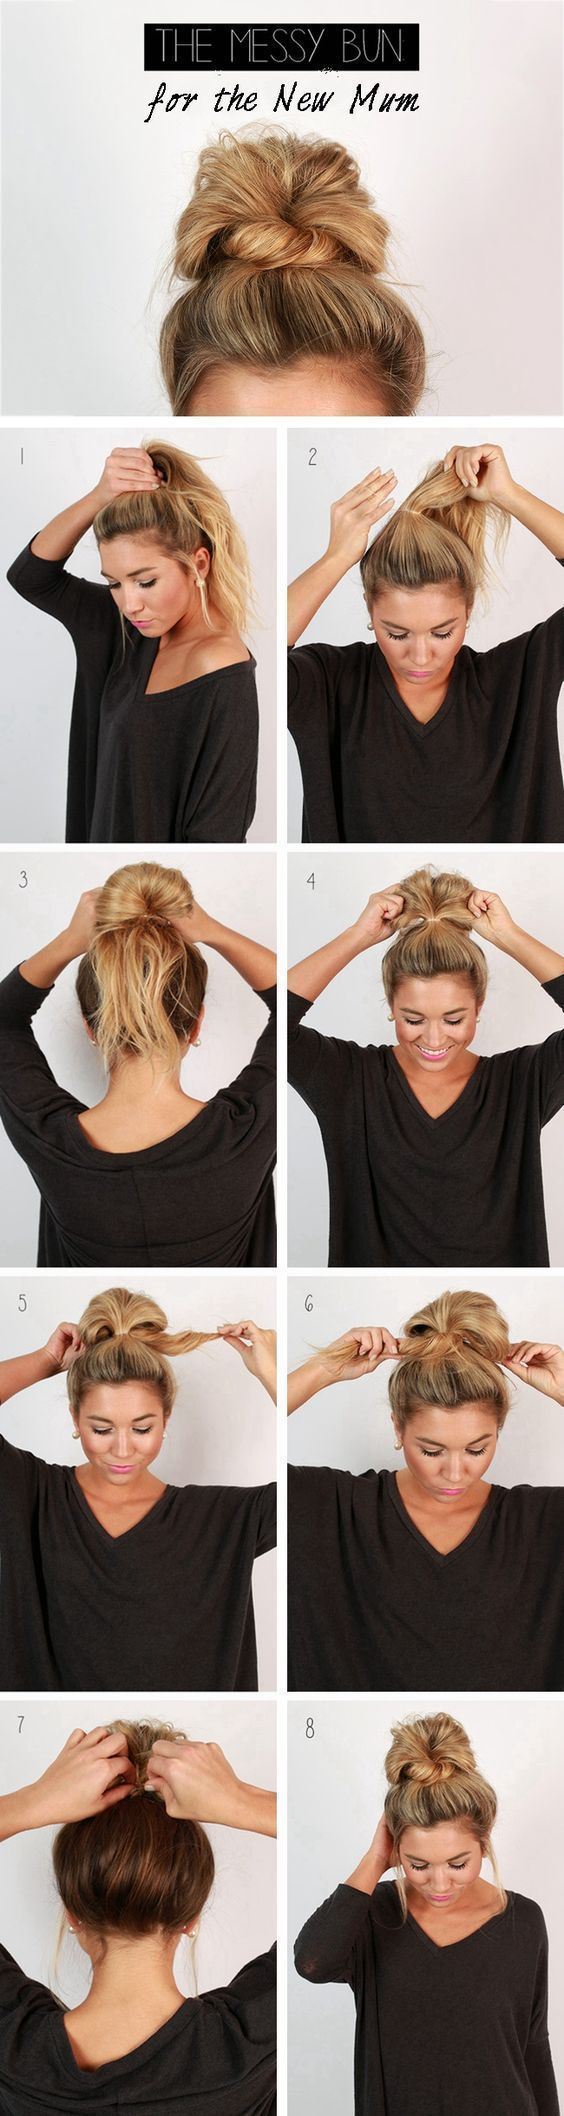 Fast Easy Messy Bun Updo For The New Mum Step By Step Hair Tutorial Hairstyles Long Hair Styles Hair Styles Medium Length Hair Styles